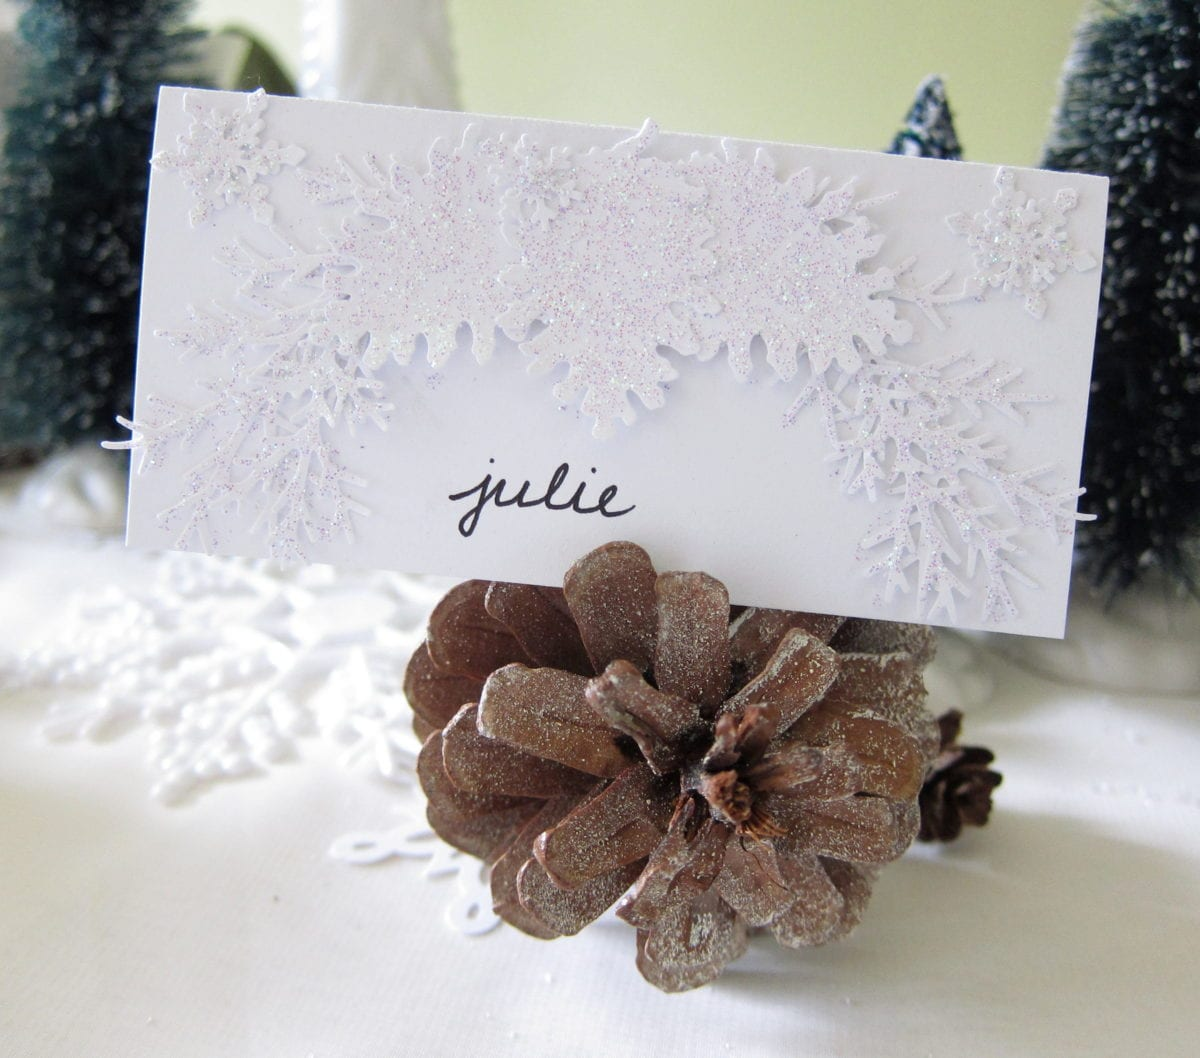 pine_cone_place_card_for_winter_wedding